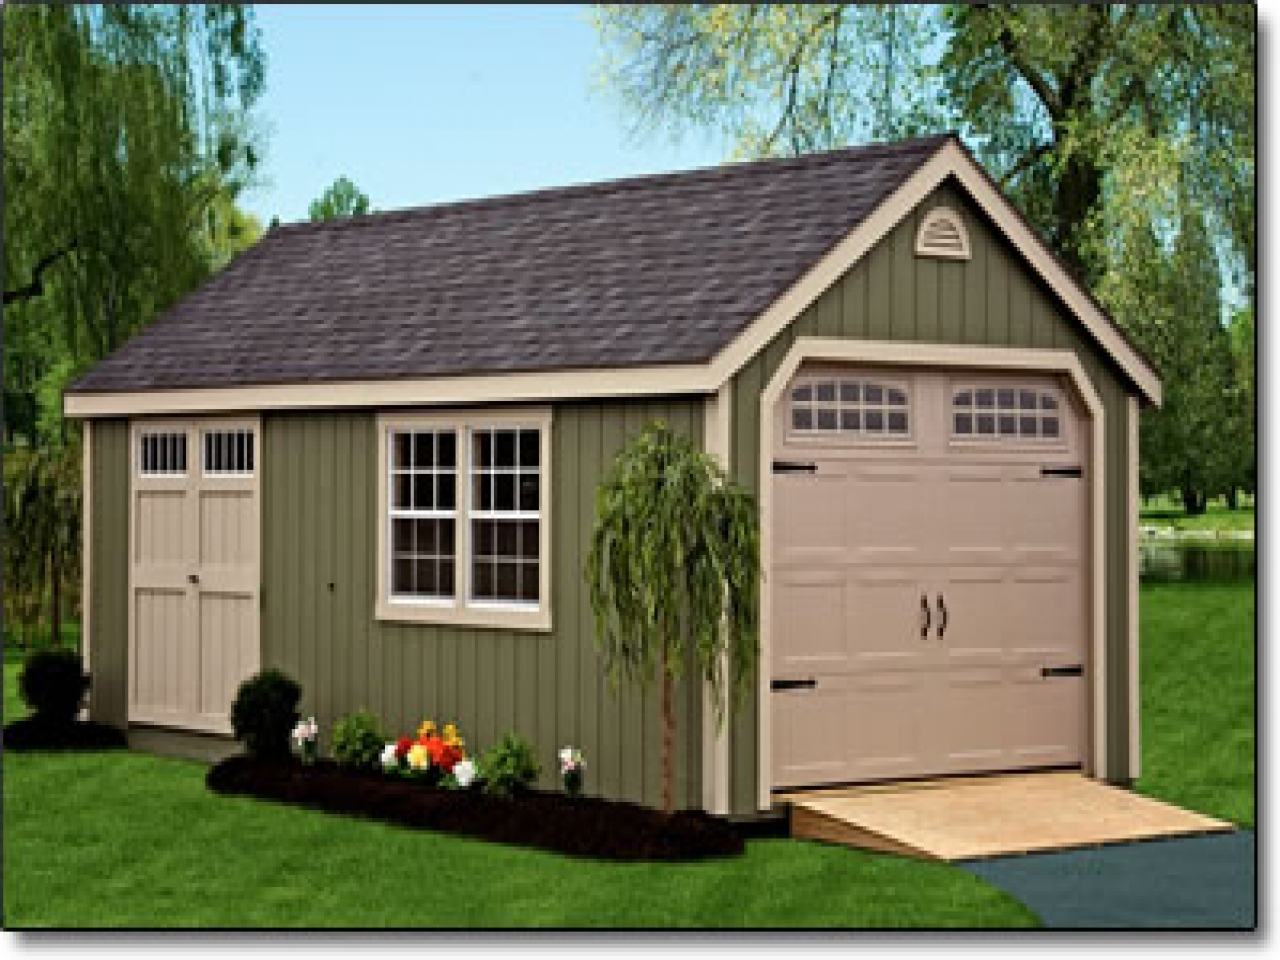 Garage Sheds To Protect Vehicles Carehomedecor